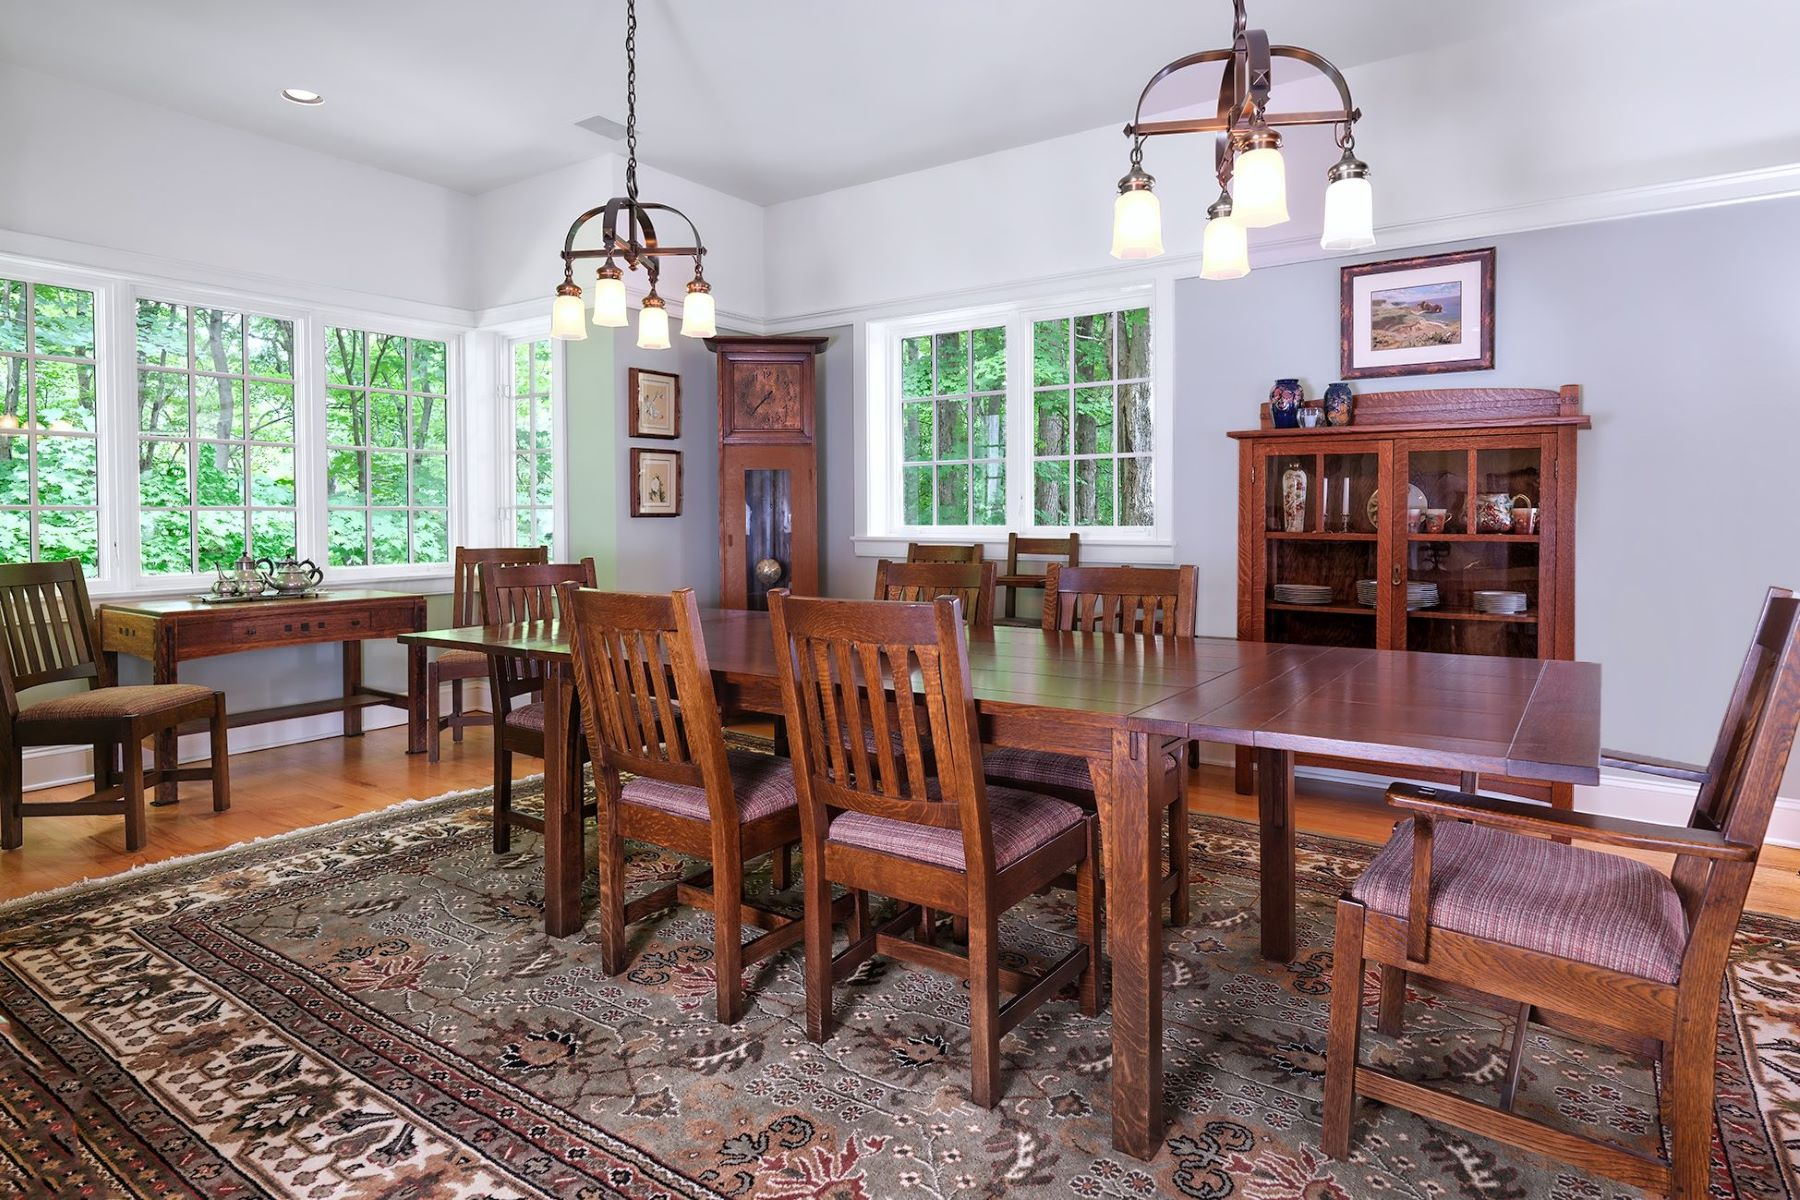 Additional photo for property listing at Exquisite English Country Manor 56 Upper Creek Road, Stockton, New Jersey 08559 United States